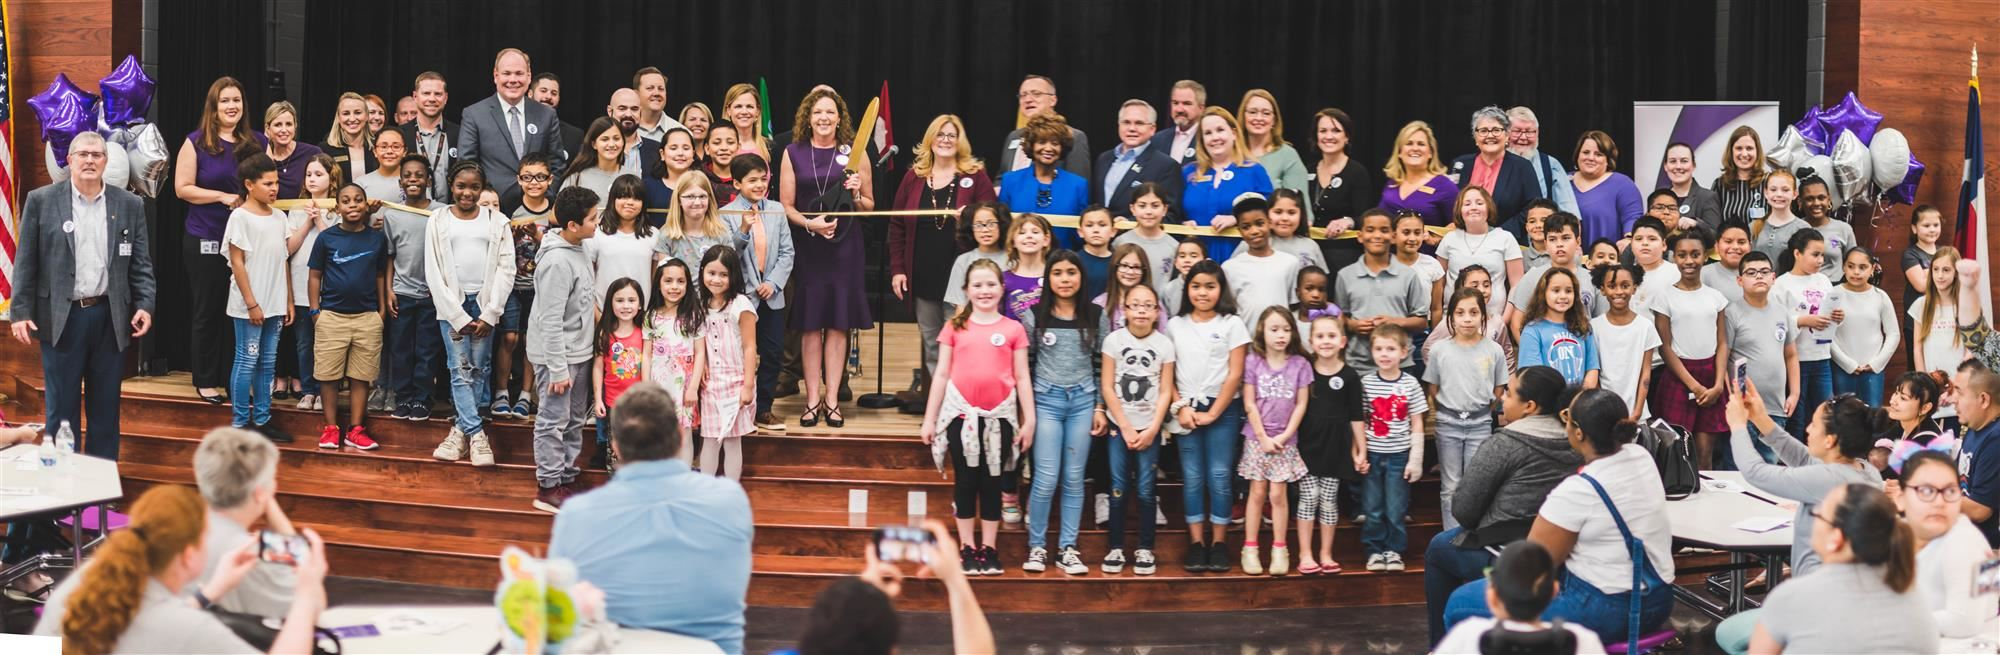 Mill Street Elementary Ribbon Cutting Ceremony 2020